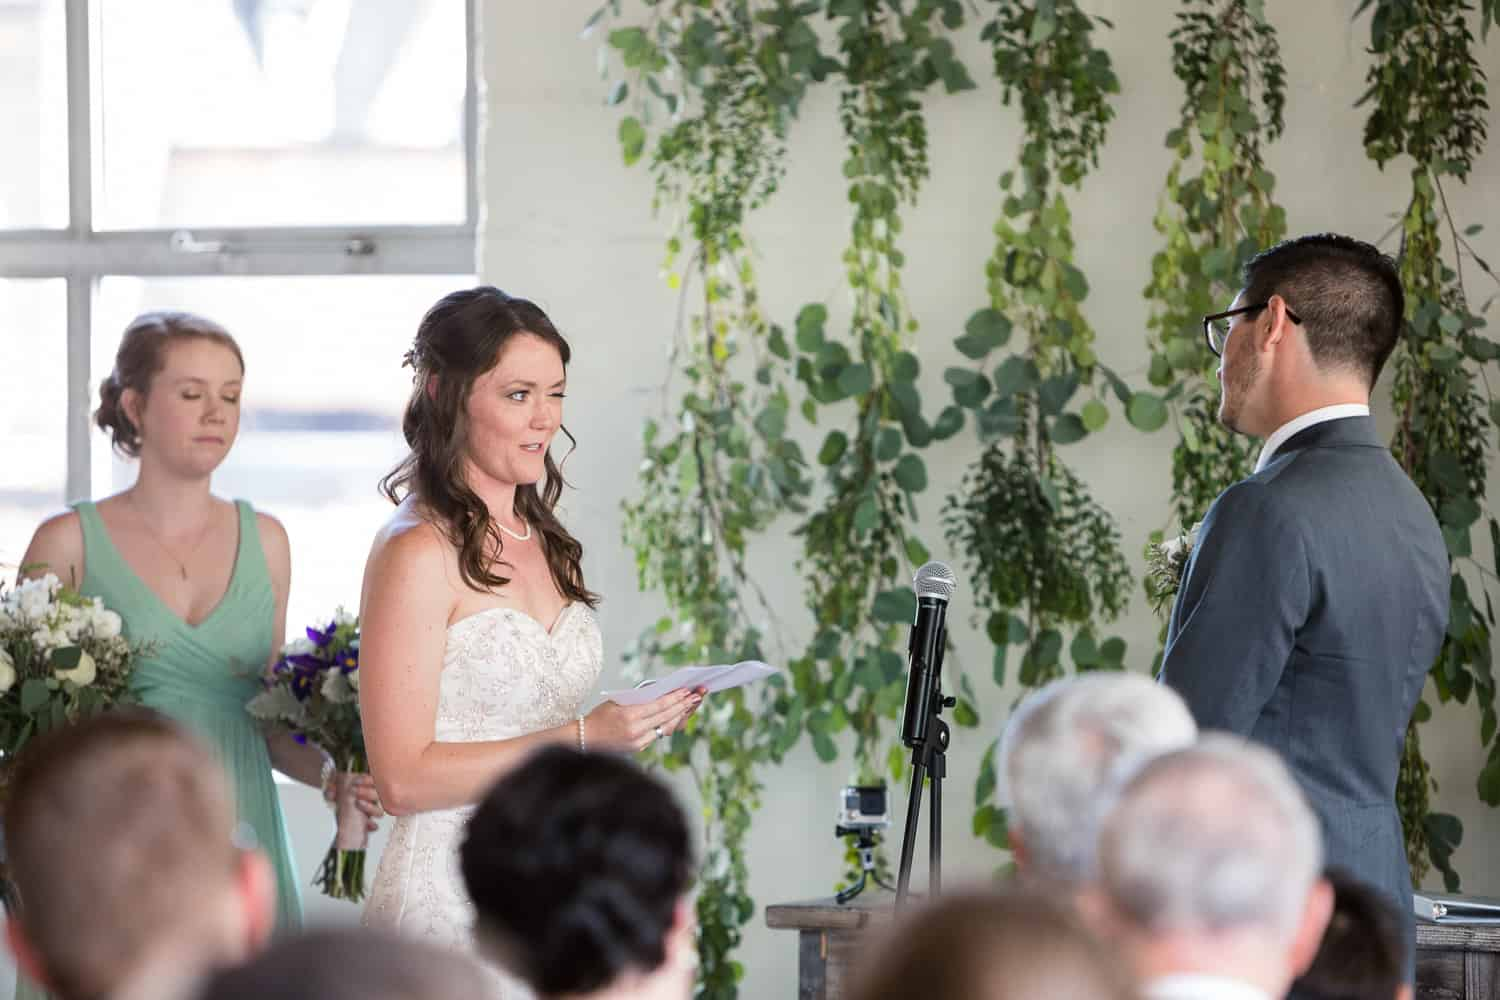 the bride and groom exchange their vows and she winks and he laughs.